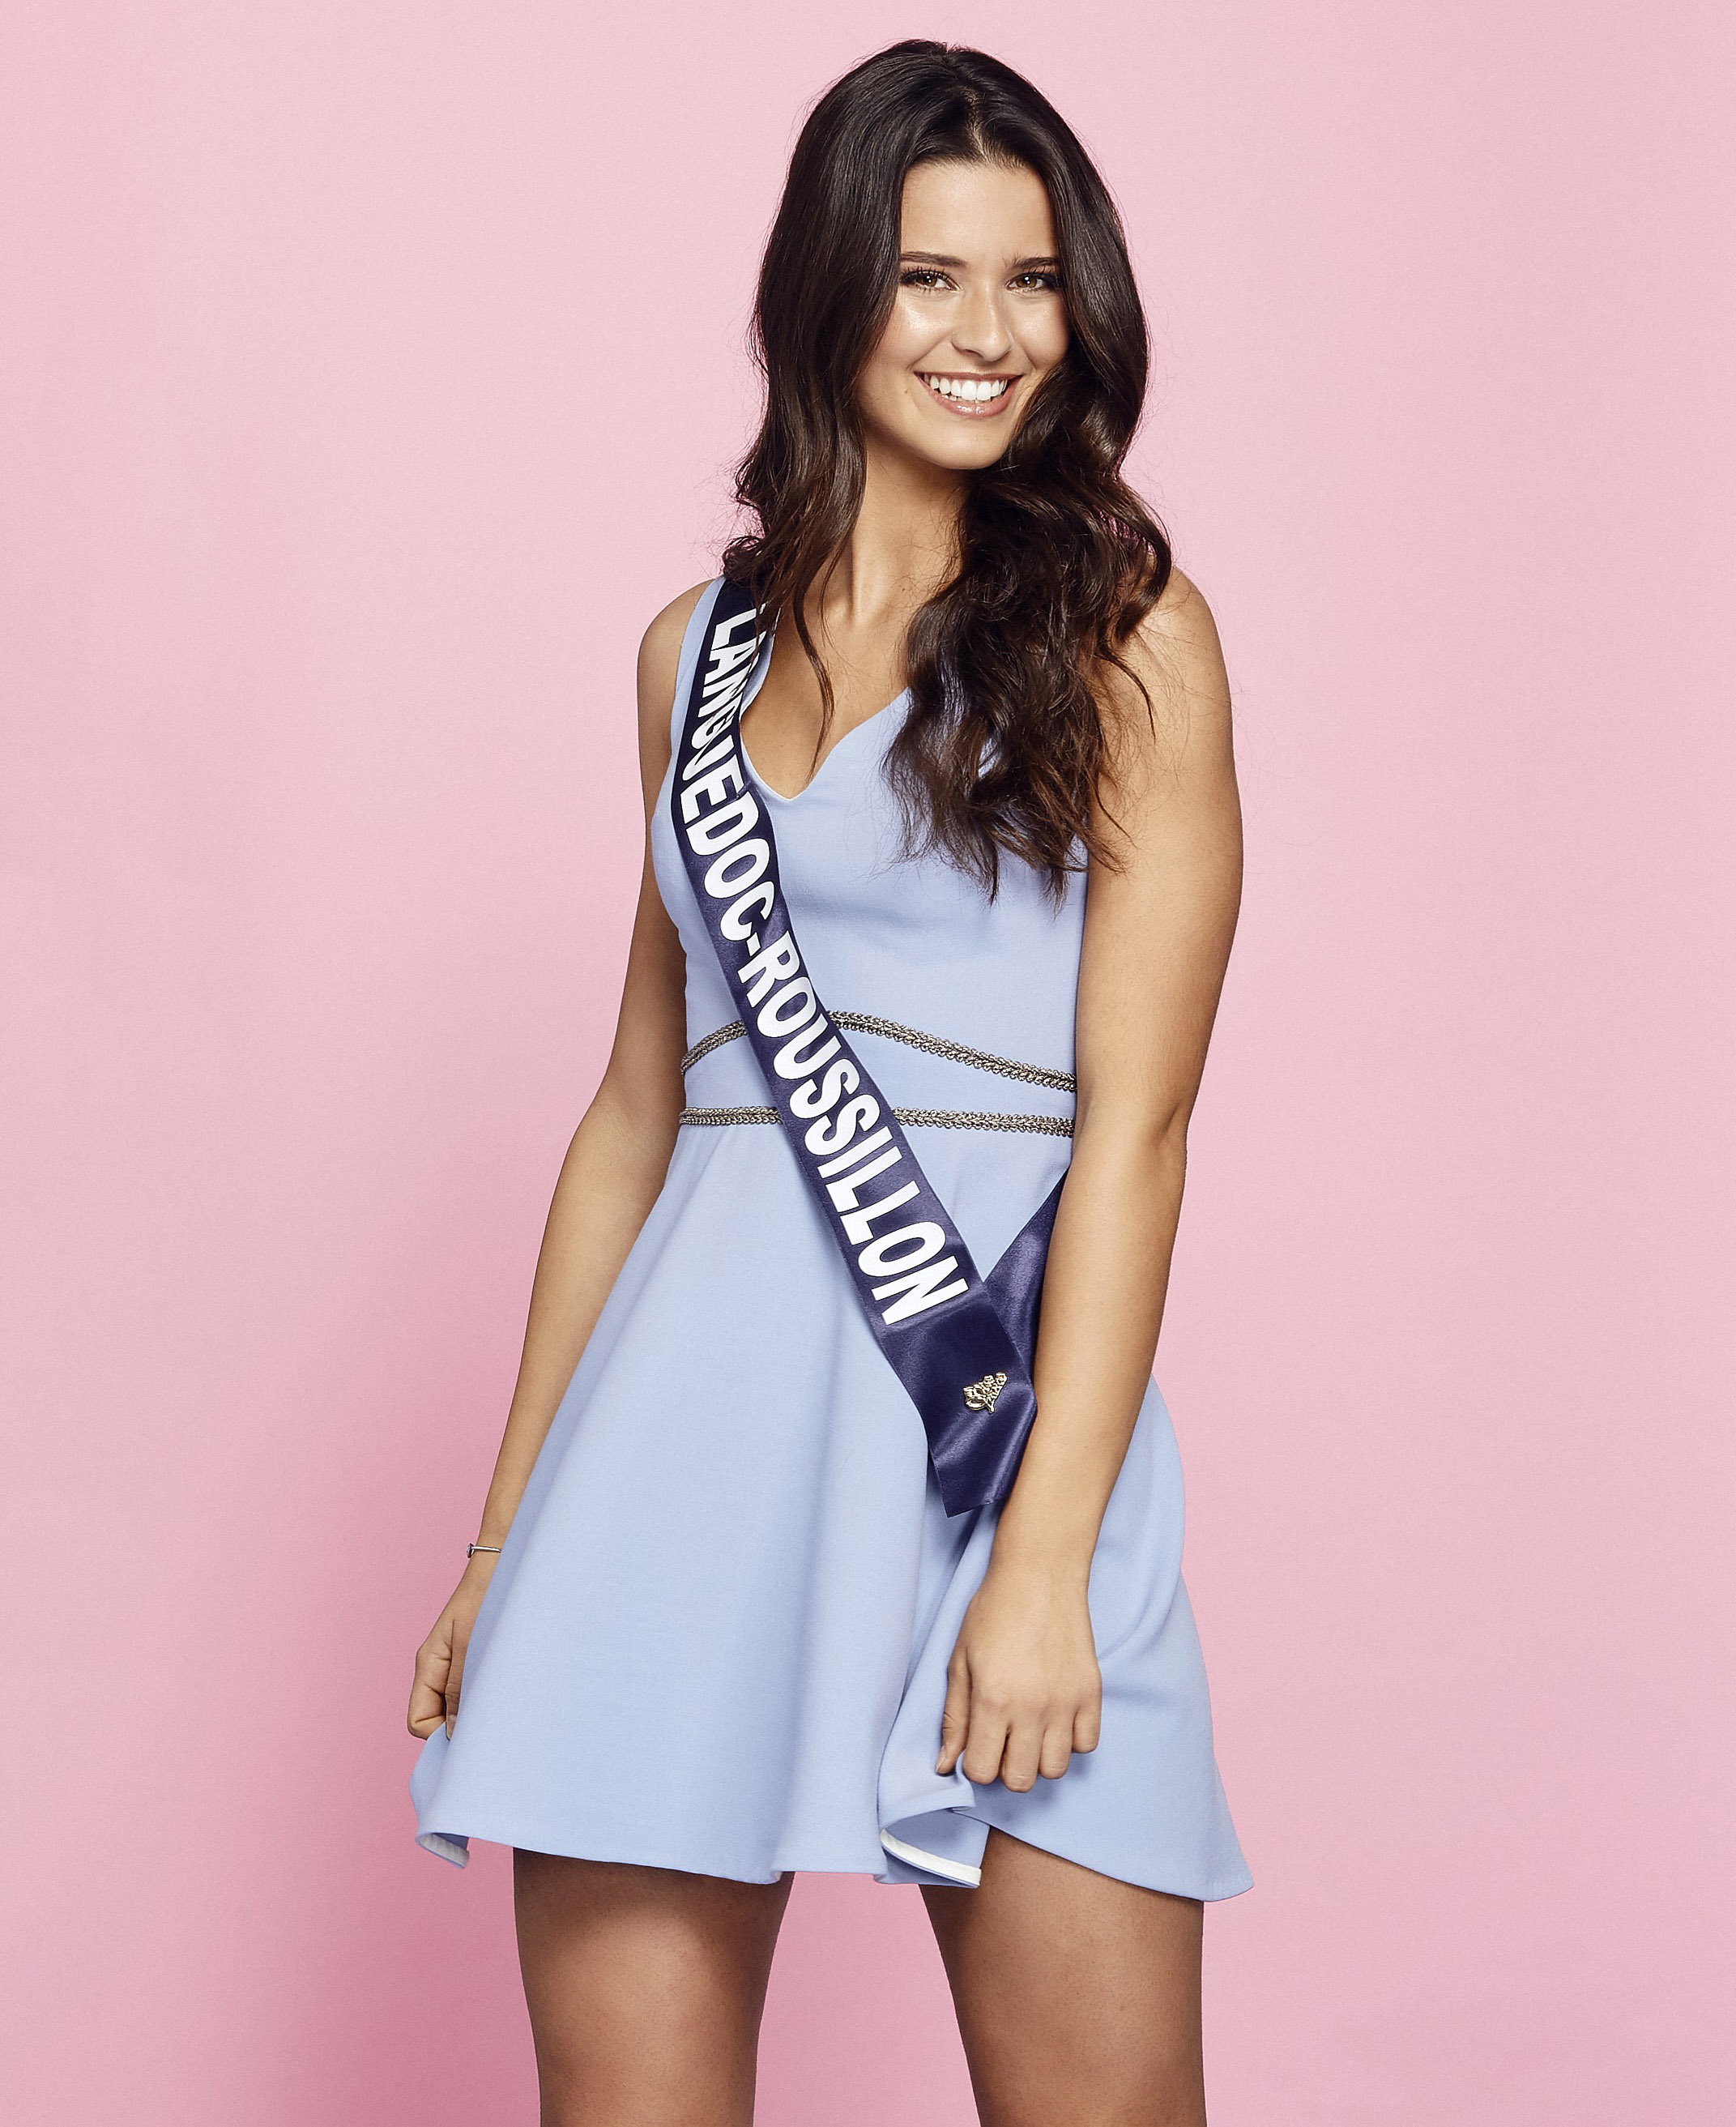 Miss Languedoc-Roussillon - Lola Brengues